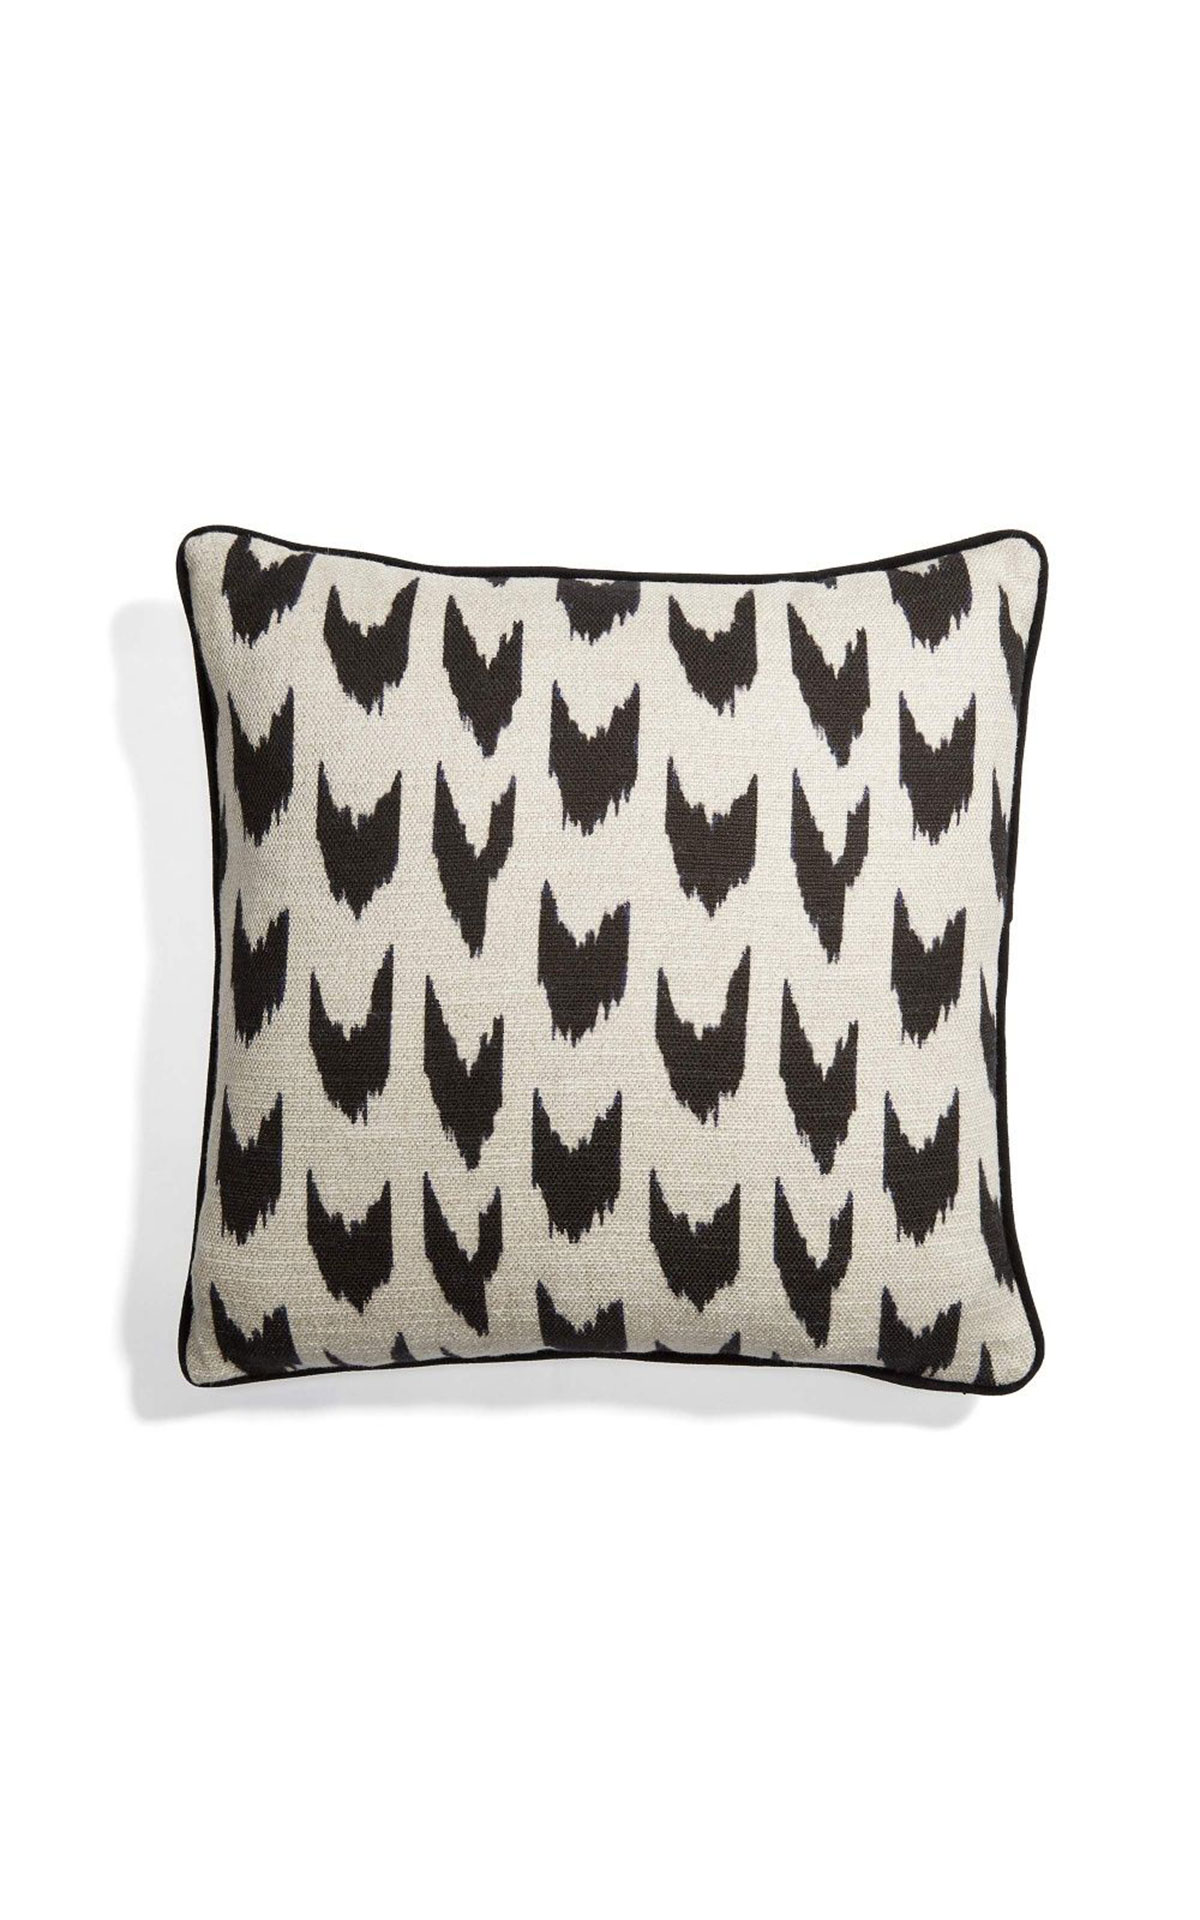 Soho Home Raval cushion from Bicester Village